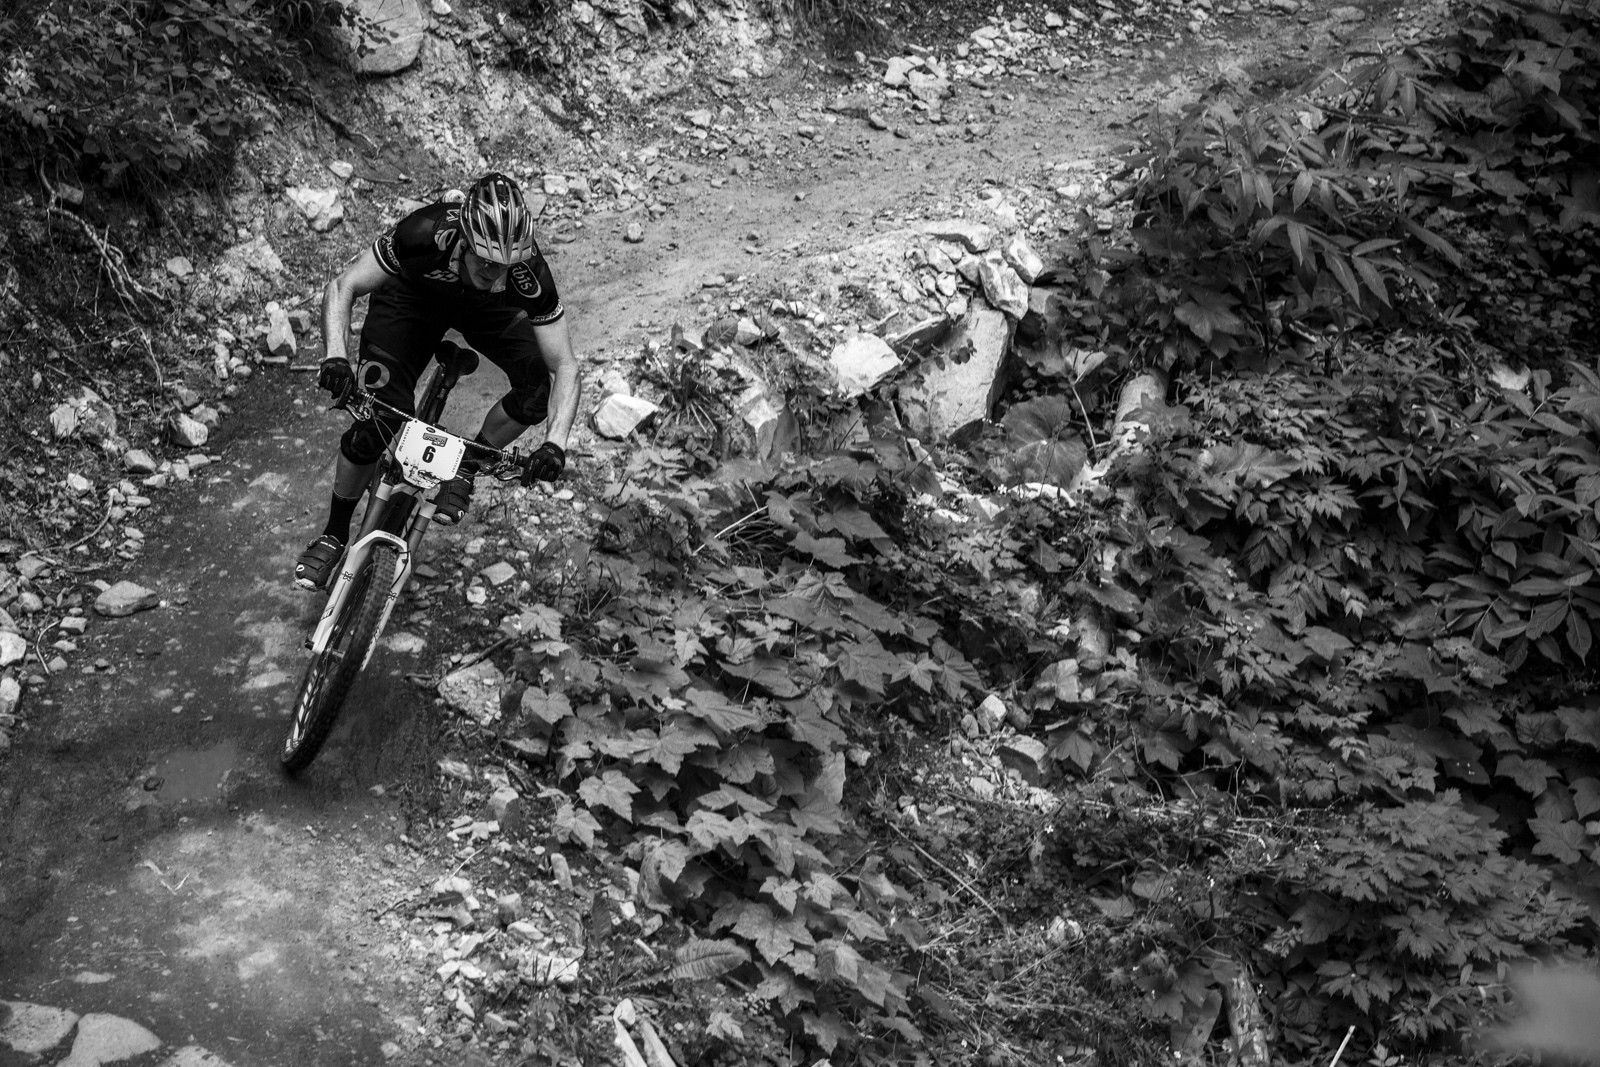 Brian Lopes, 2nd Place Bell Enduro Cup at Canyons - Race Report, Photos and Video: Bell Enduro Cup at Canyons Resort - Mountain Biking Pictures - Vital MTB